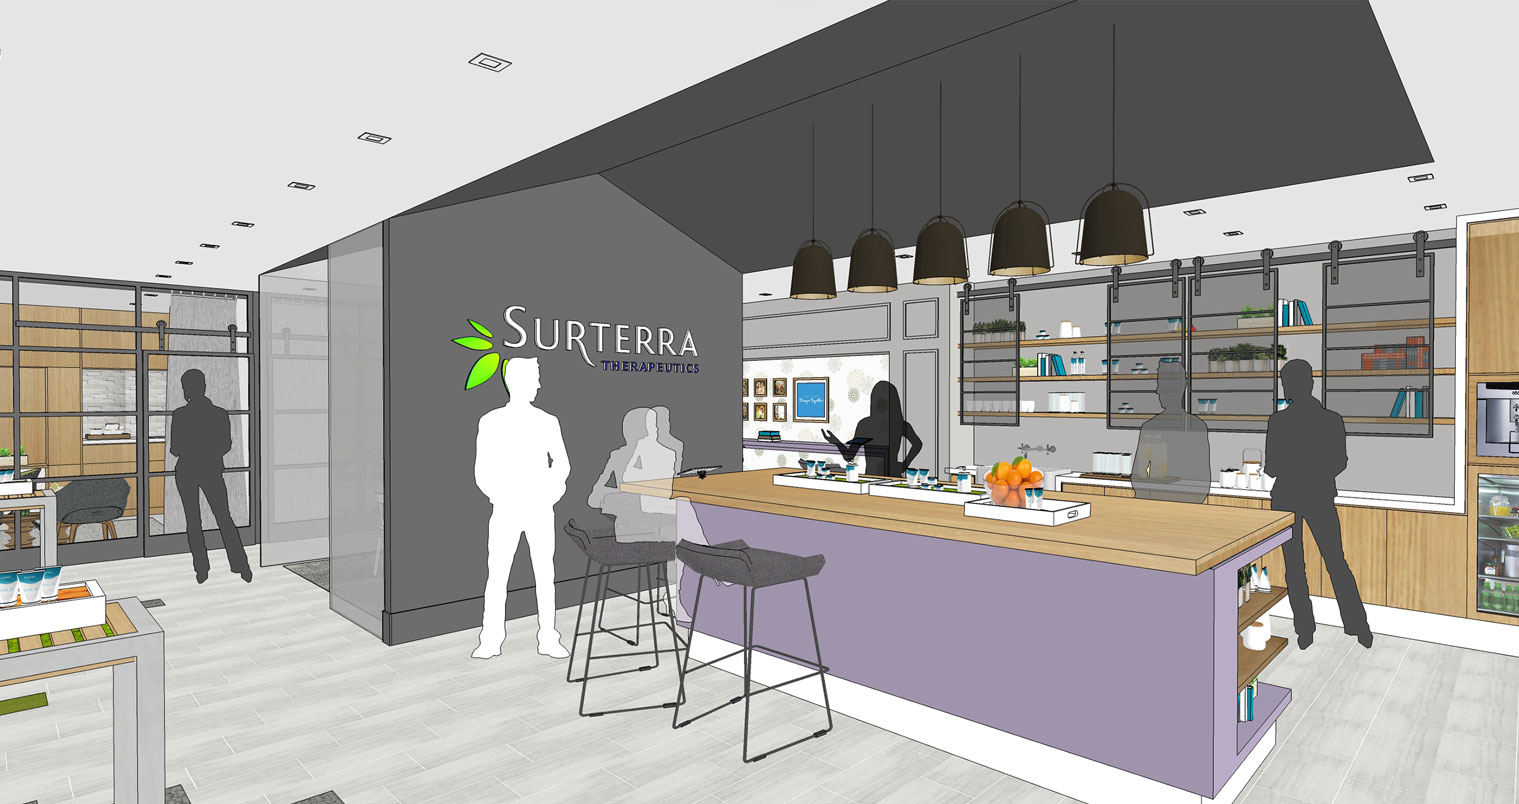 Surterra rendering showing kitchen with purple island